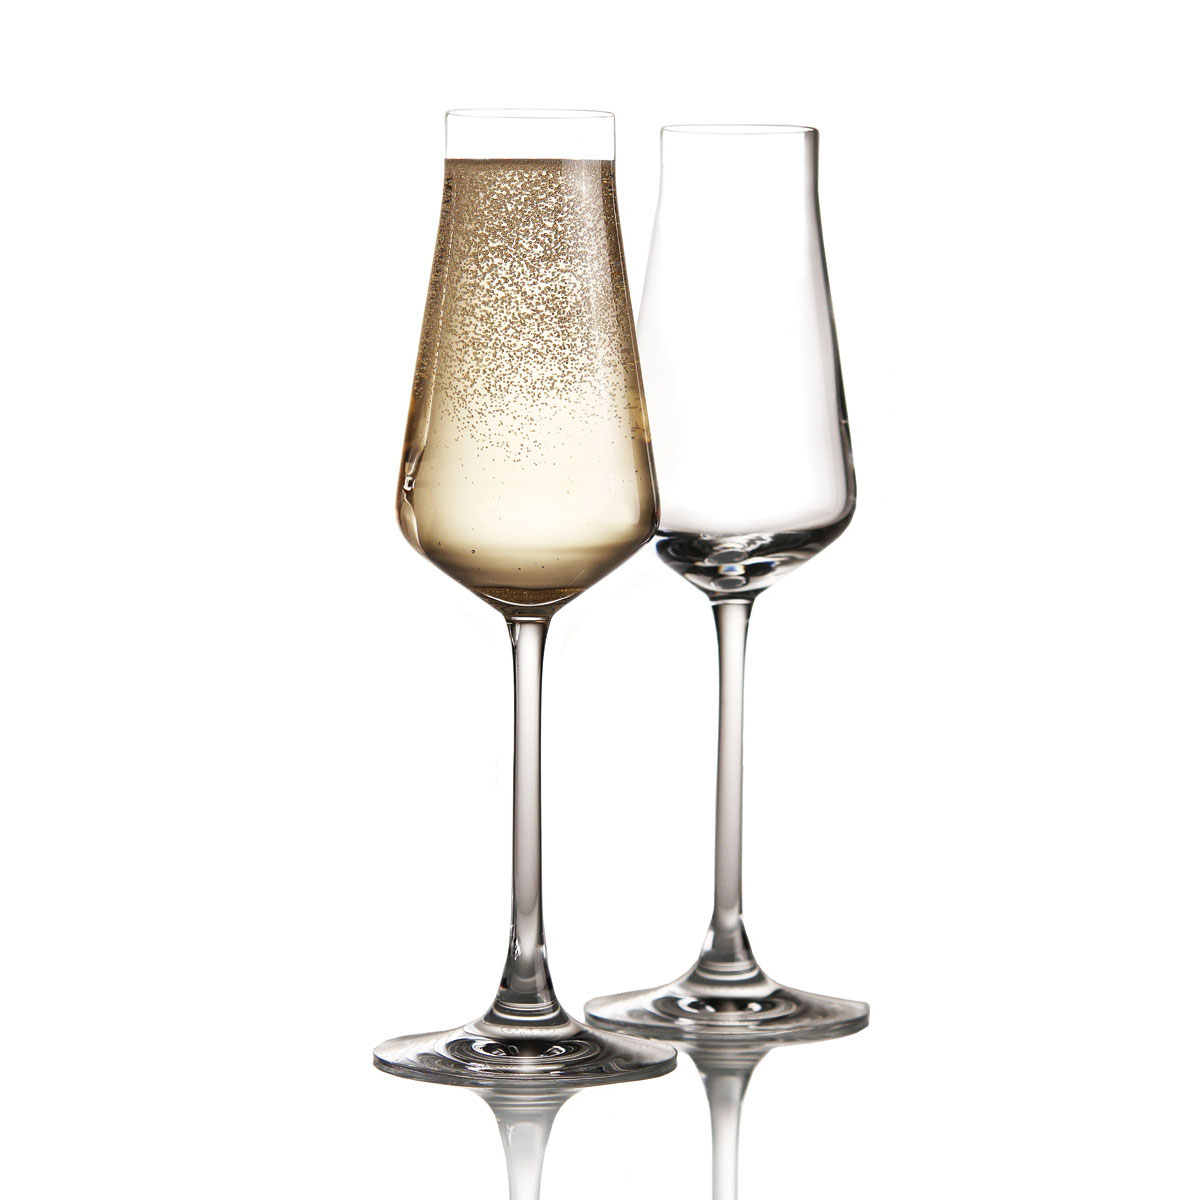 Chateau Baccarat Crystal, Degustation Champagne Crystal Flute, Pair